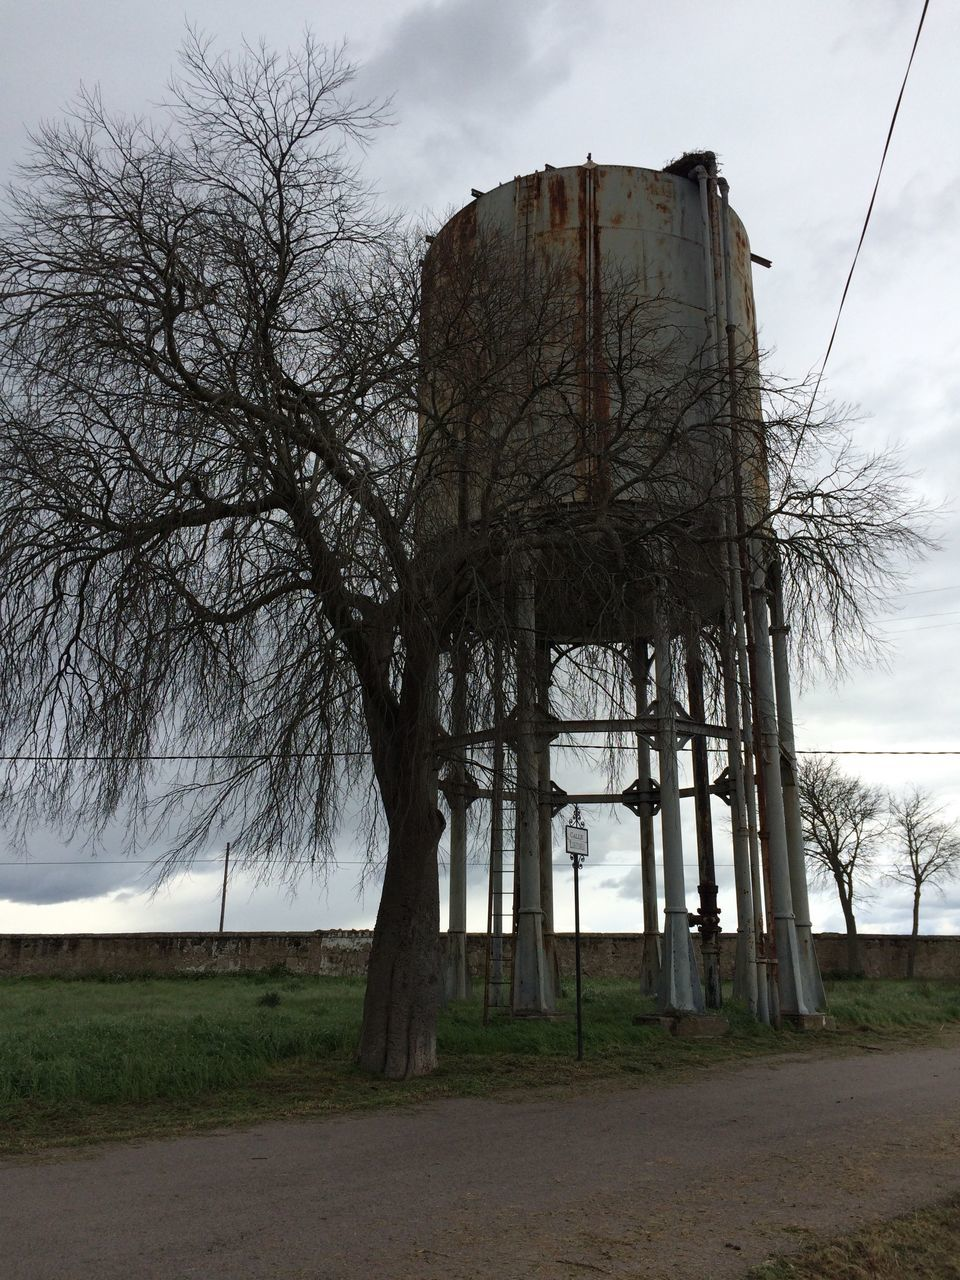 Bare Tree And Storage Tank On Field Against Sky